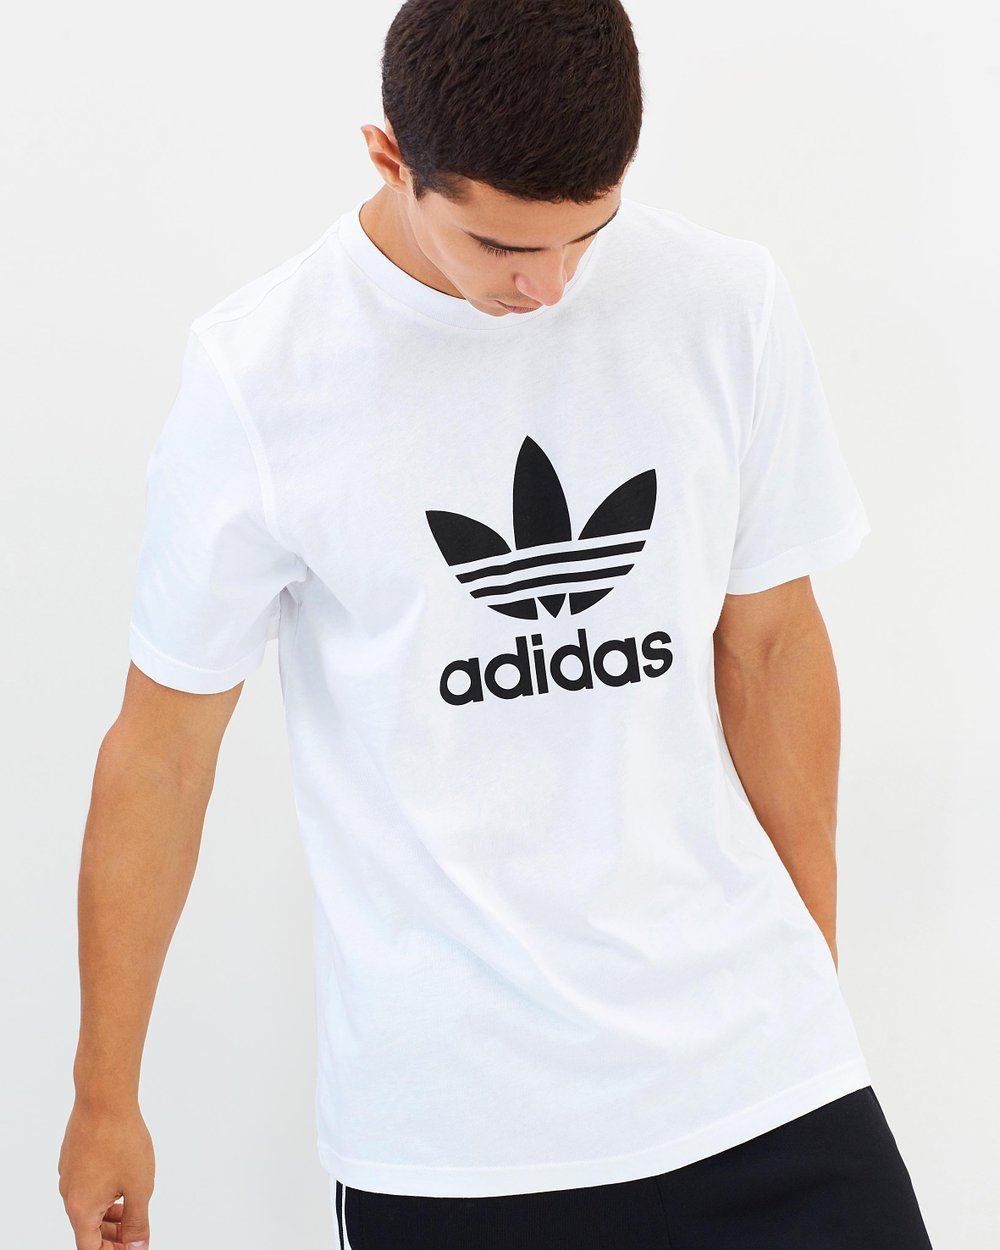 brand new 40c8a a8a39 Adicolor Trefoil T-Shirt by adidas Originals Online  THE ICONIC  Australia